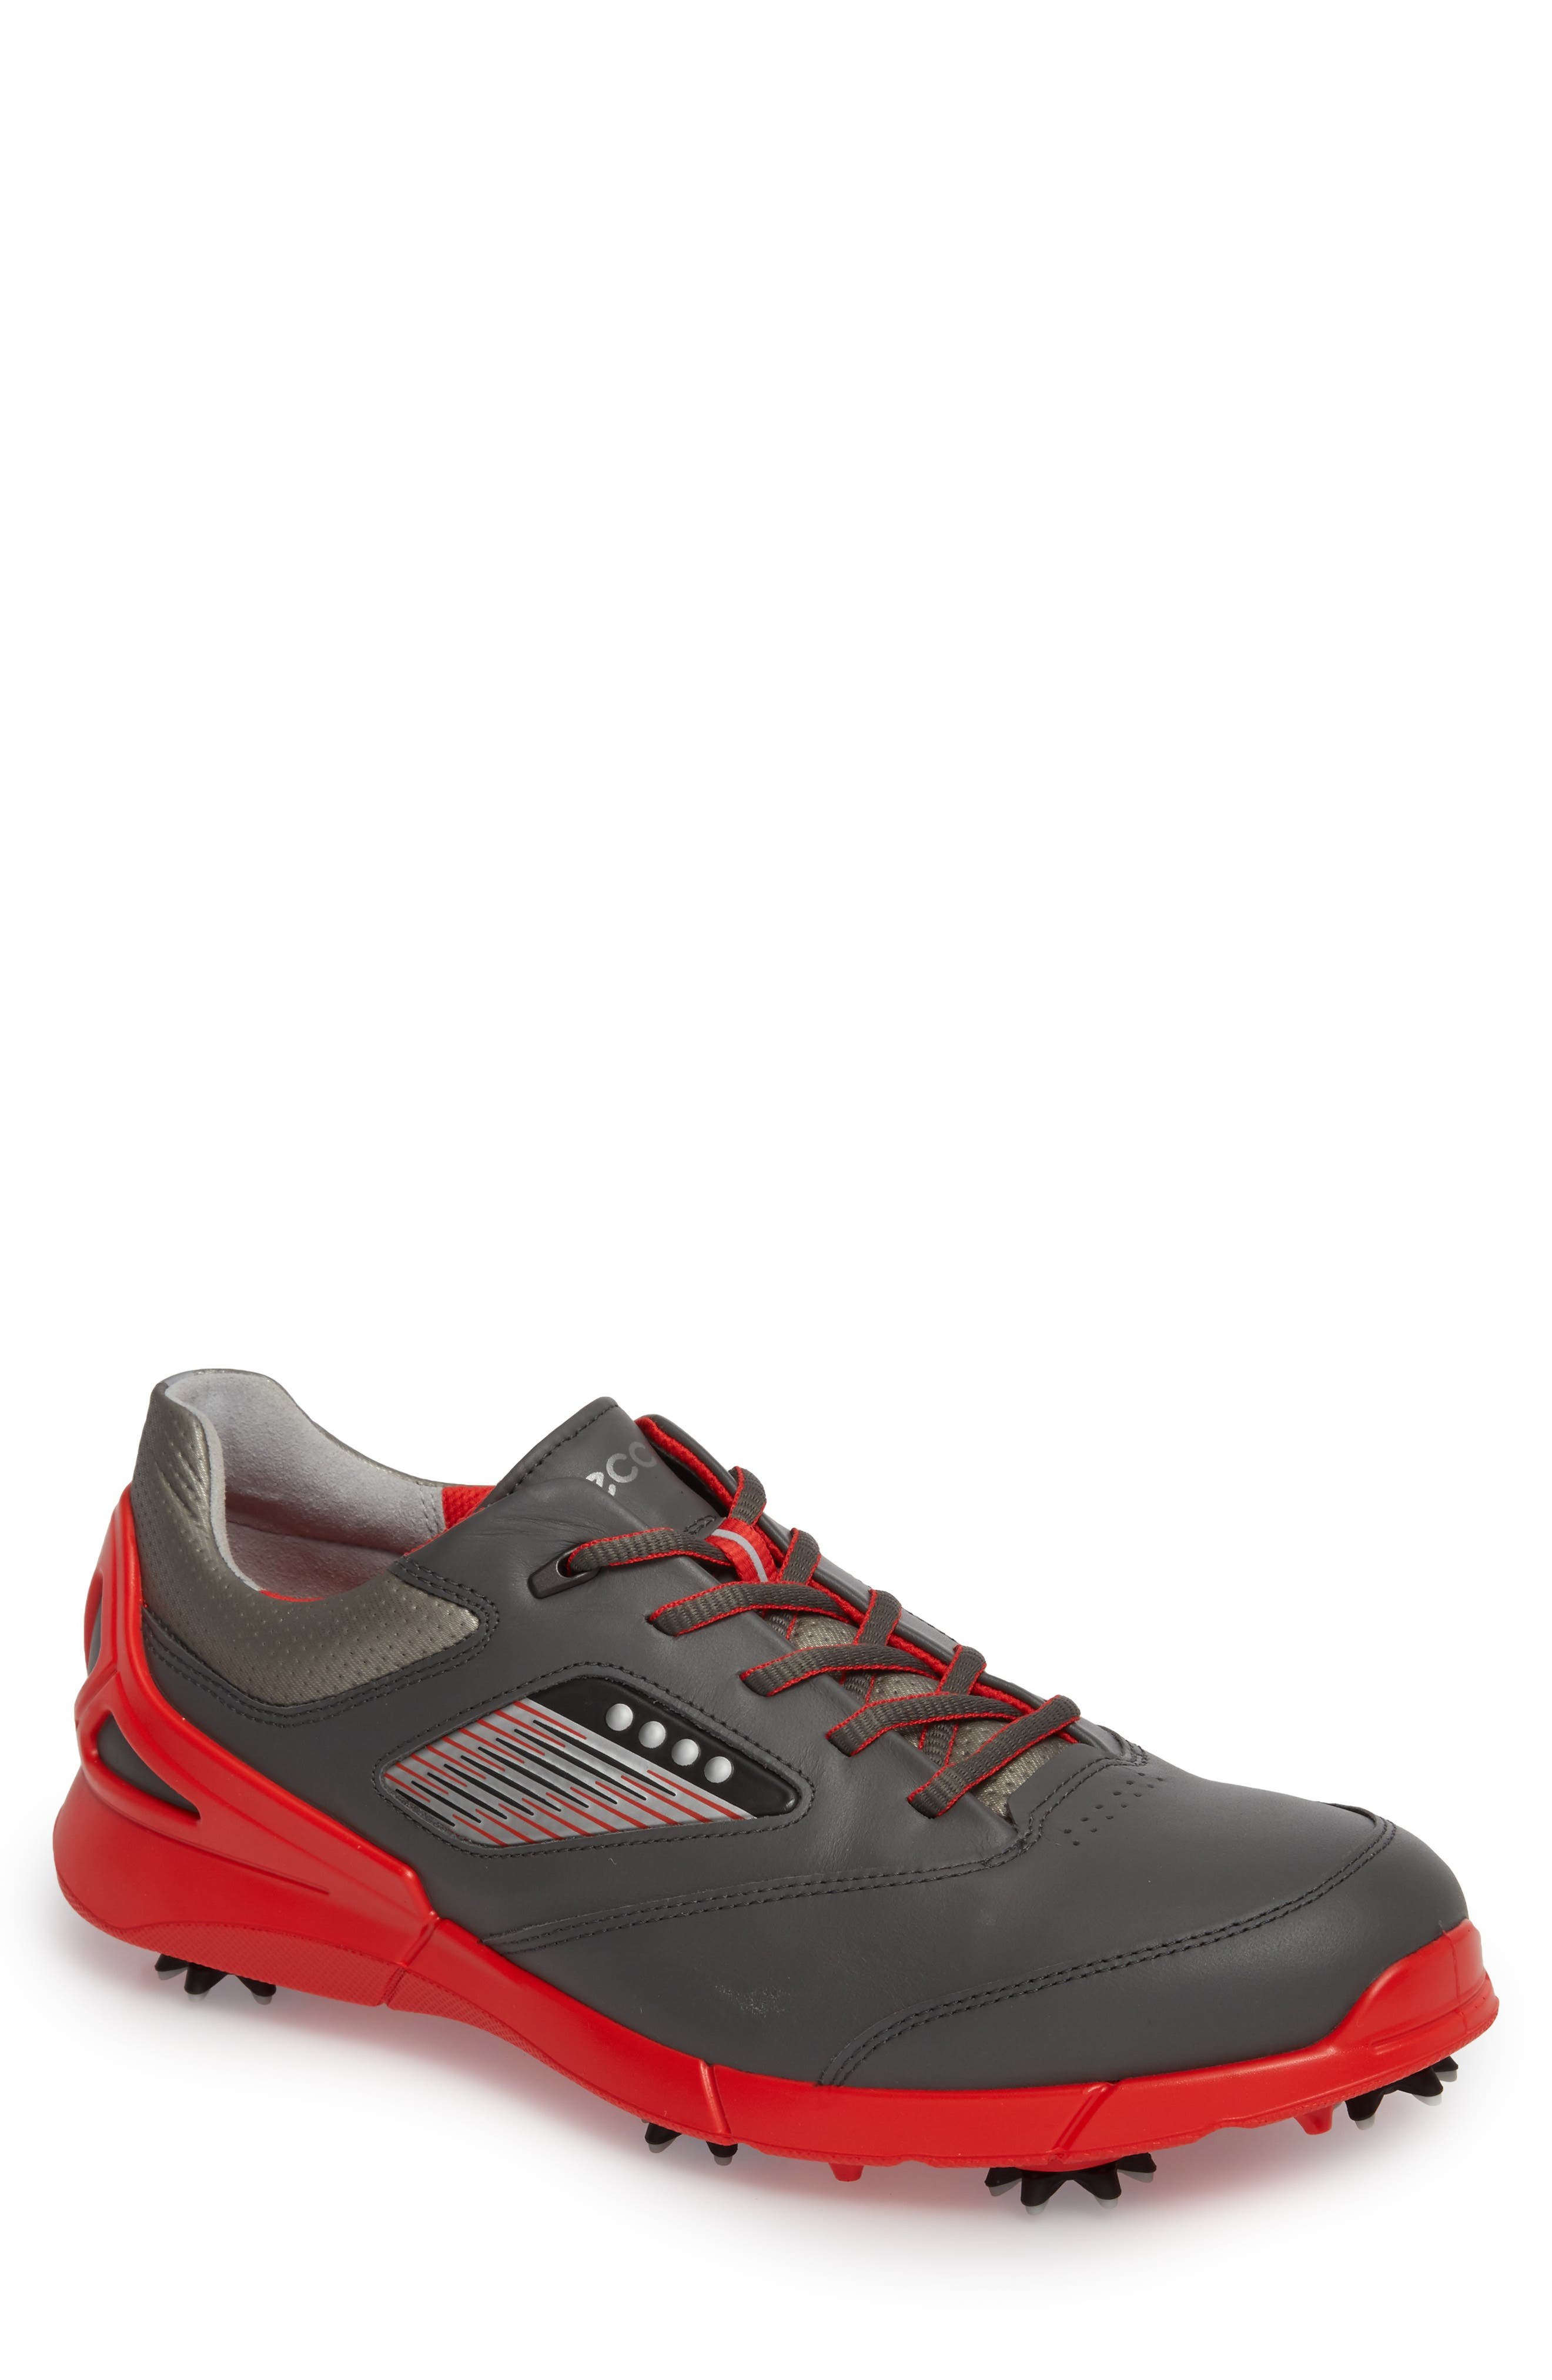 Base One Golf Shoe,                             Main thumbnail 1, color,                             BLACK/ SCARLET LEATHER